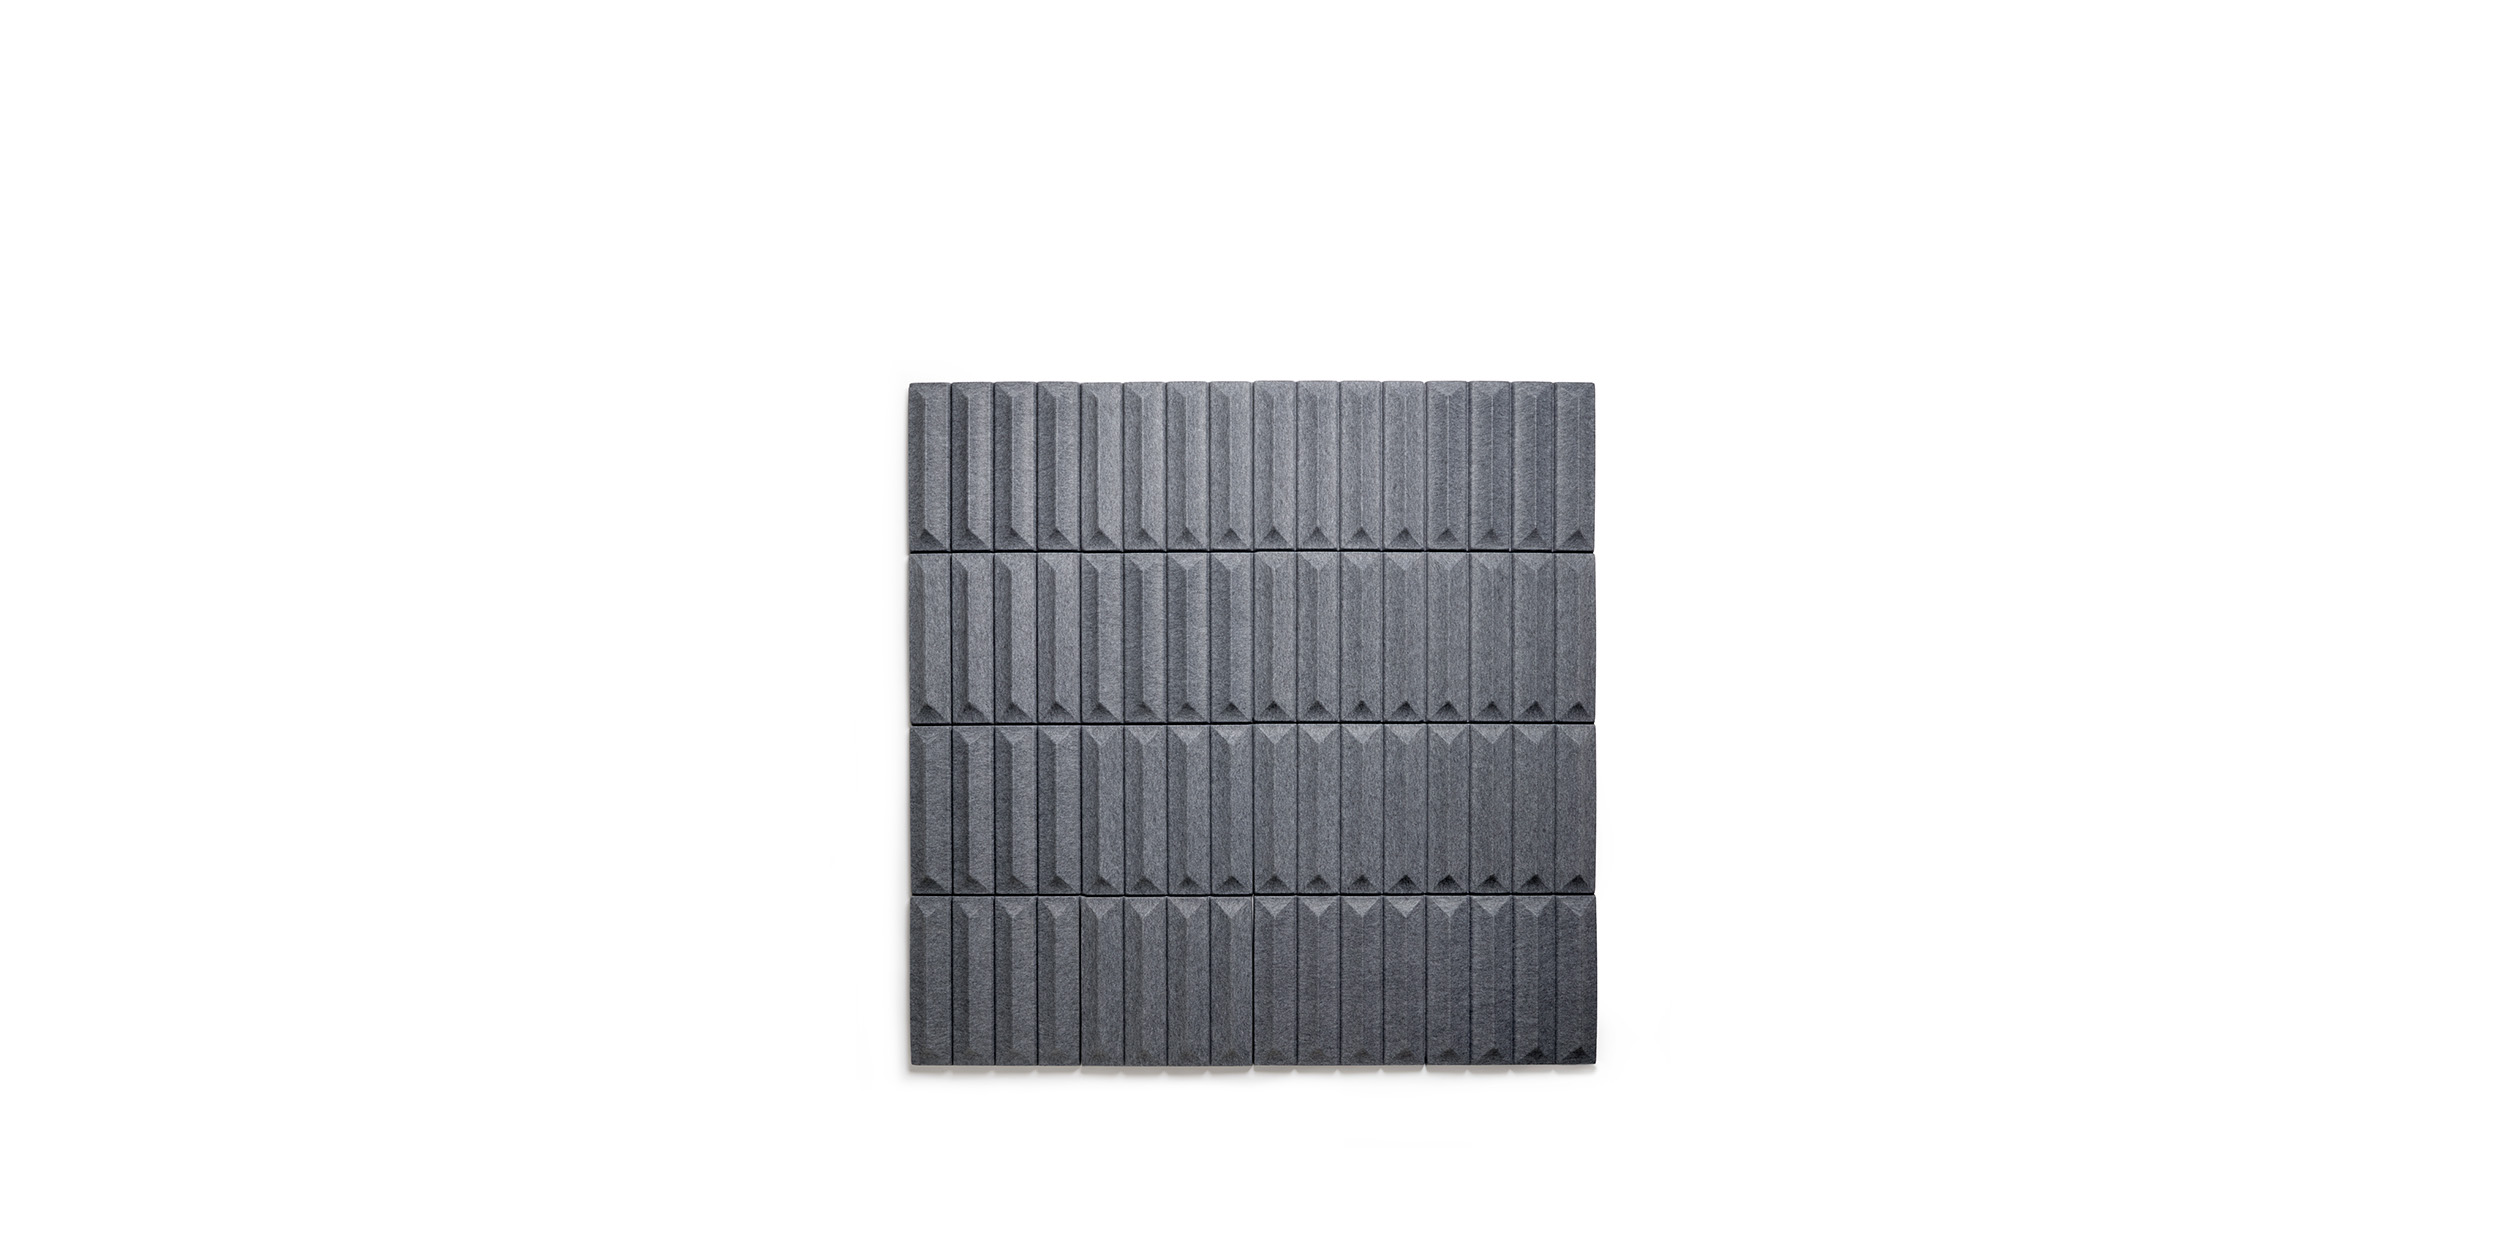 Soundwave® Ceramic, Acoustic panel by Thomas Sandell